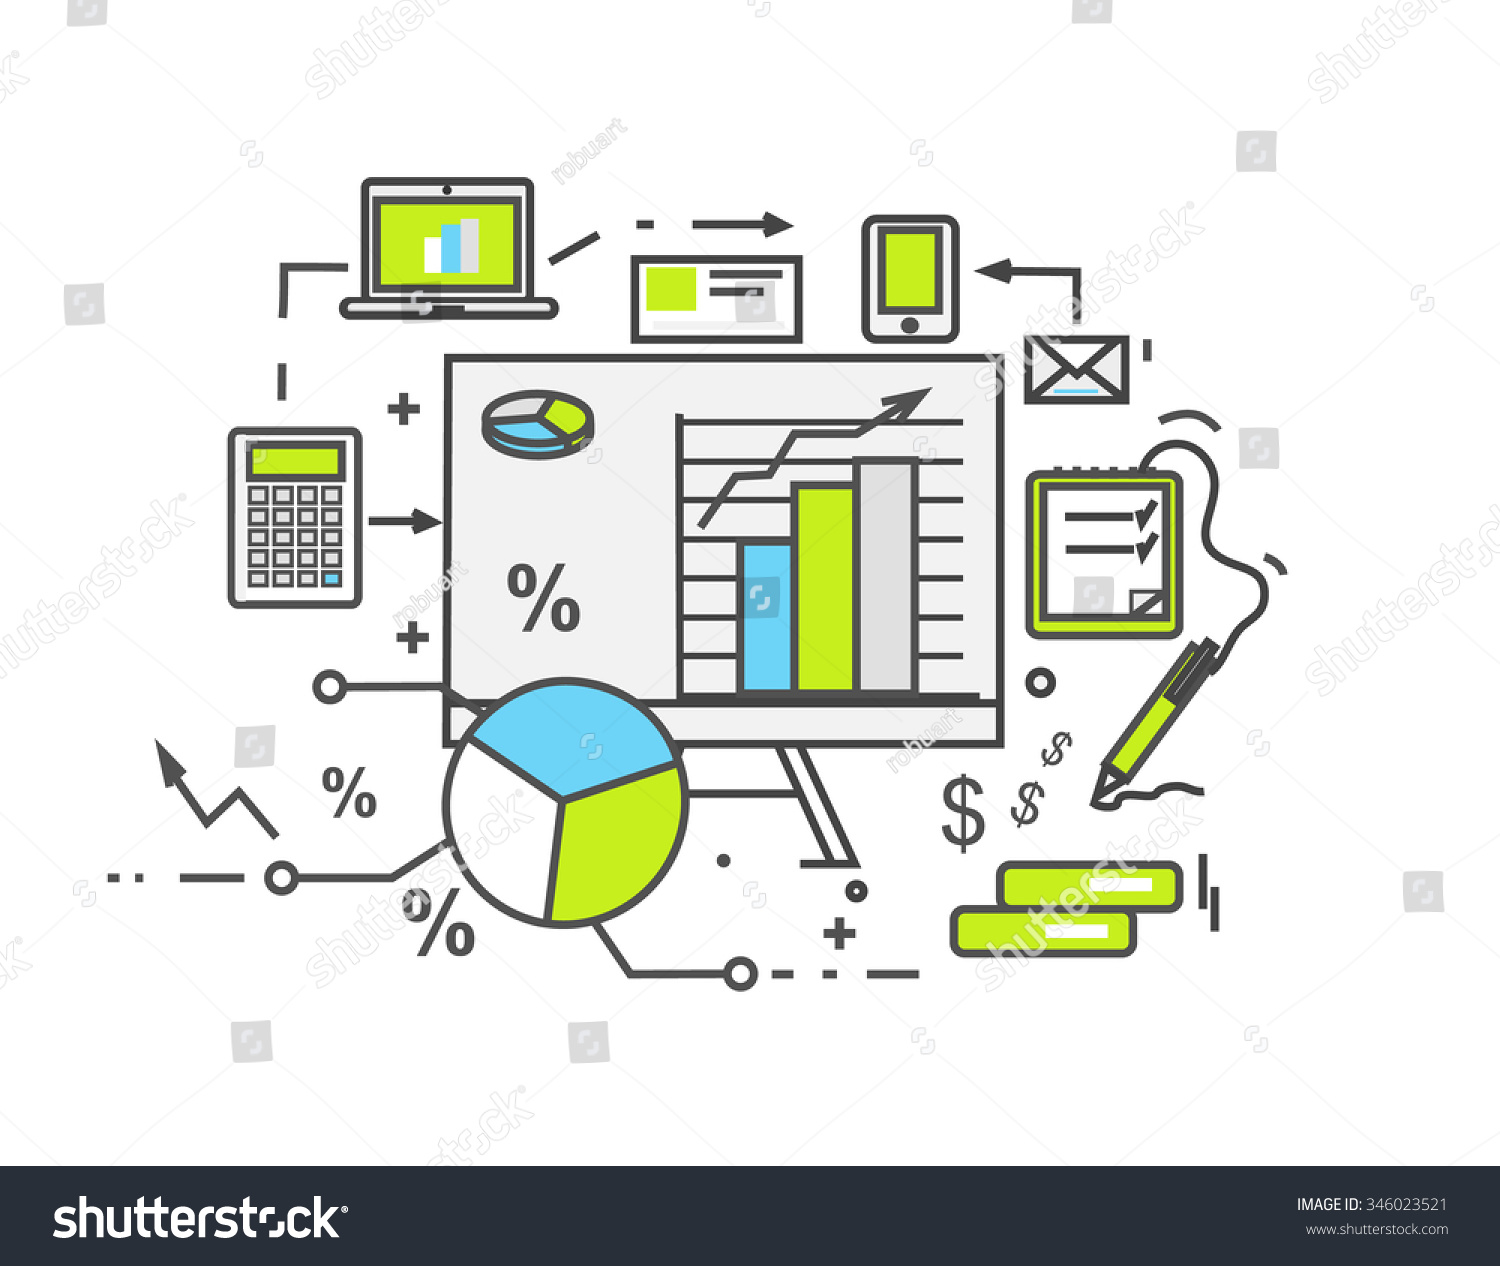 data analysis icon flat design business stock illustration business information finance document chart analytic strategy